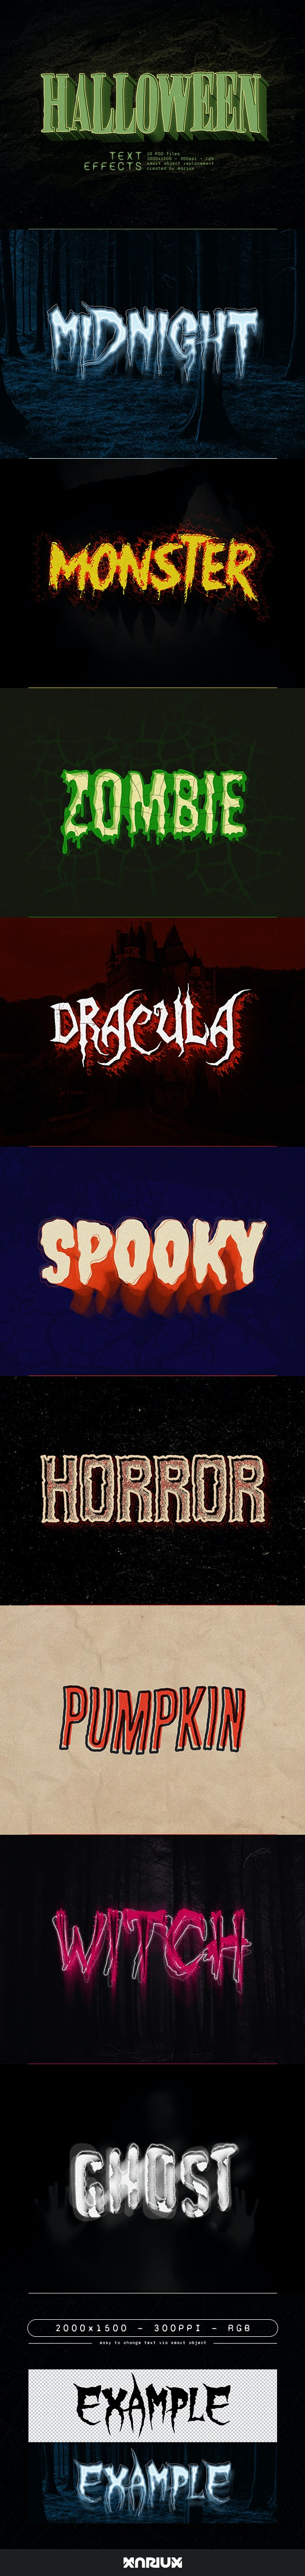 Halloween Text Effects - Text Effects Actions